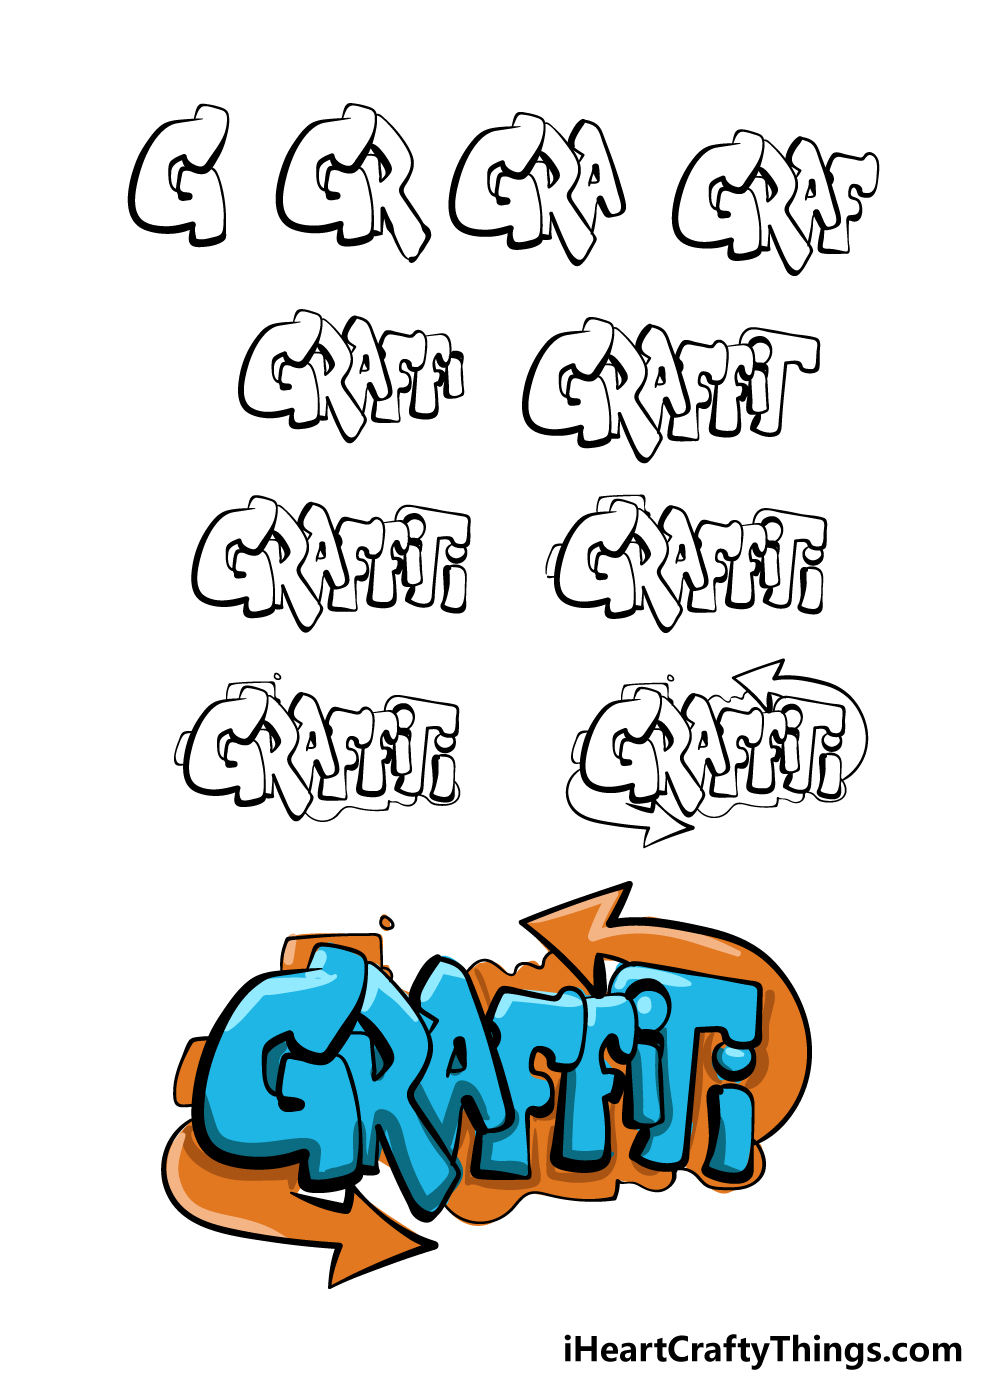 how to draw graffiti in 11 steps